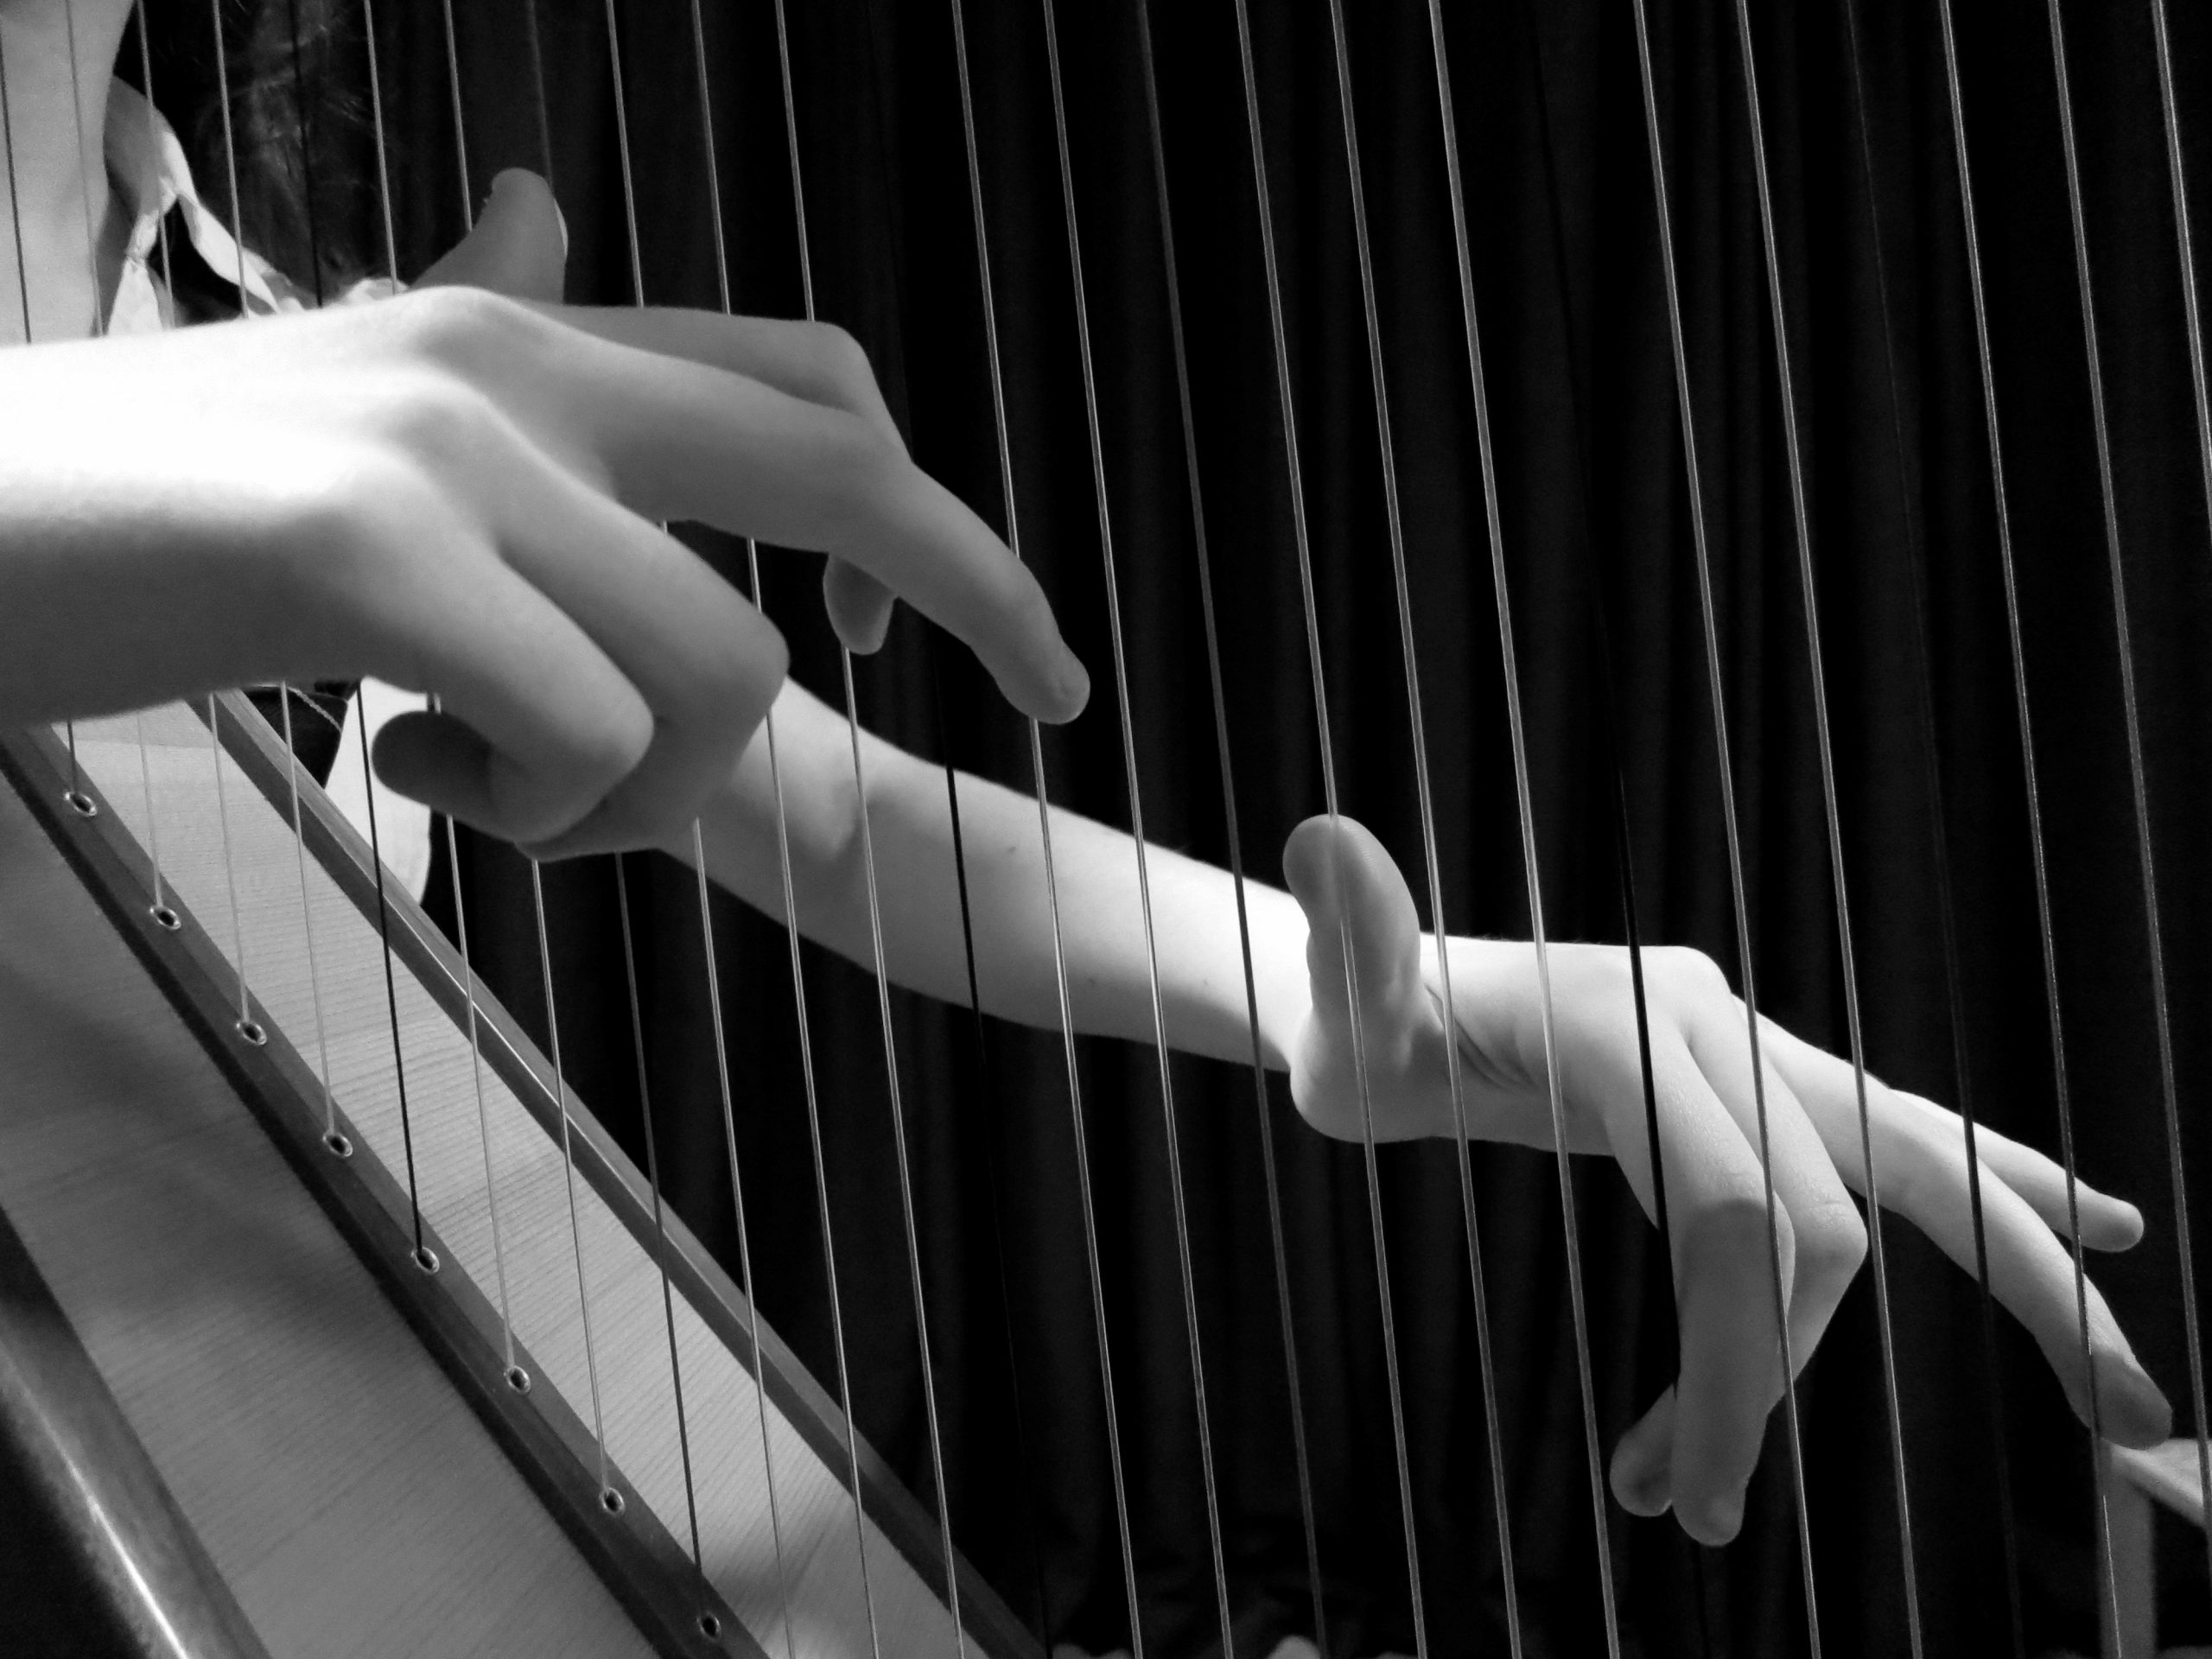 Two hands playing harp